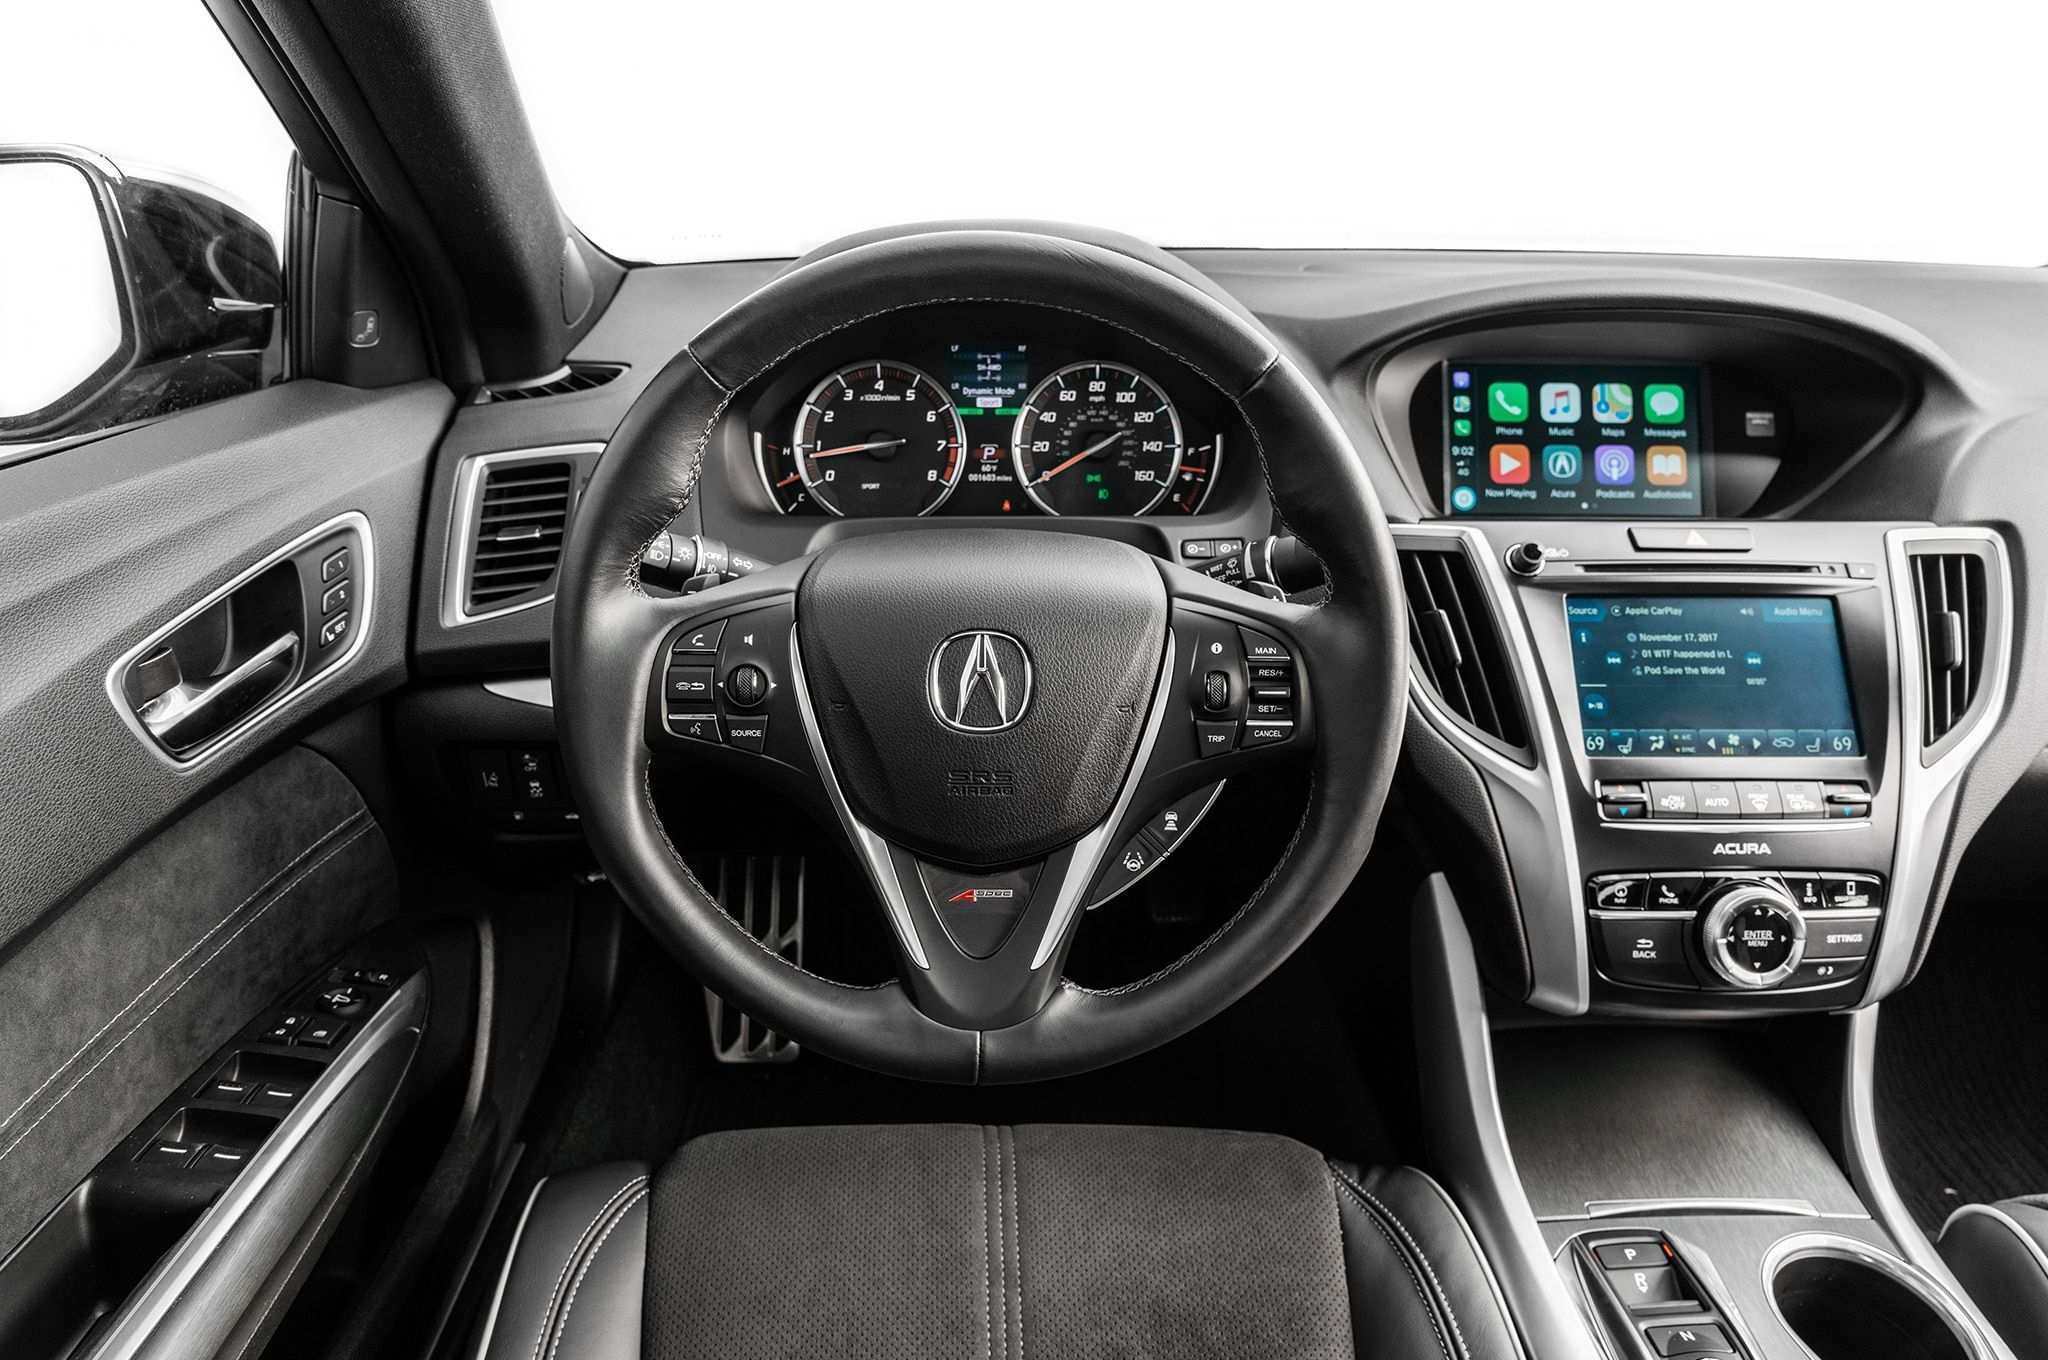 48 All New Acura Tlx 2019 Review Interior Photos for Acura Tlx 2019 Review Interior